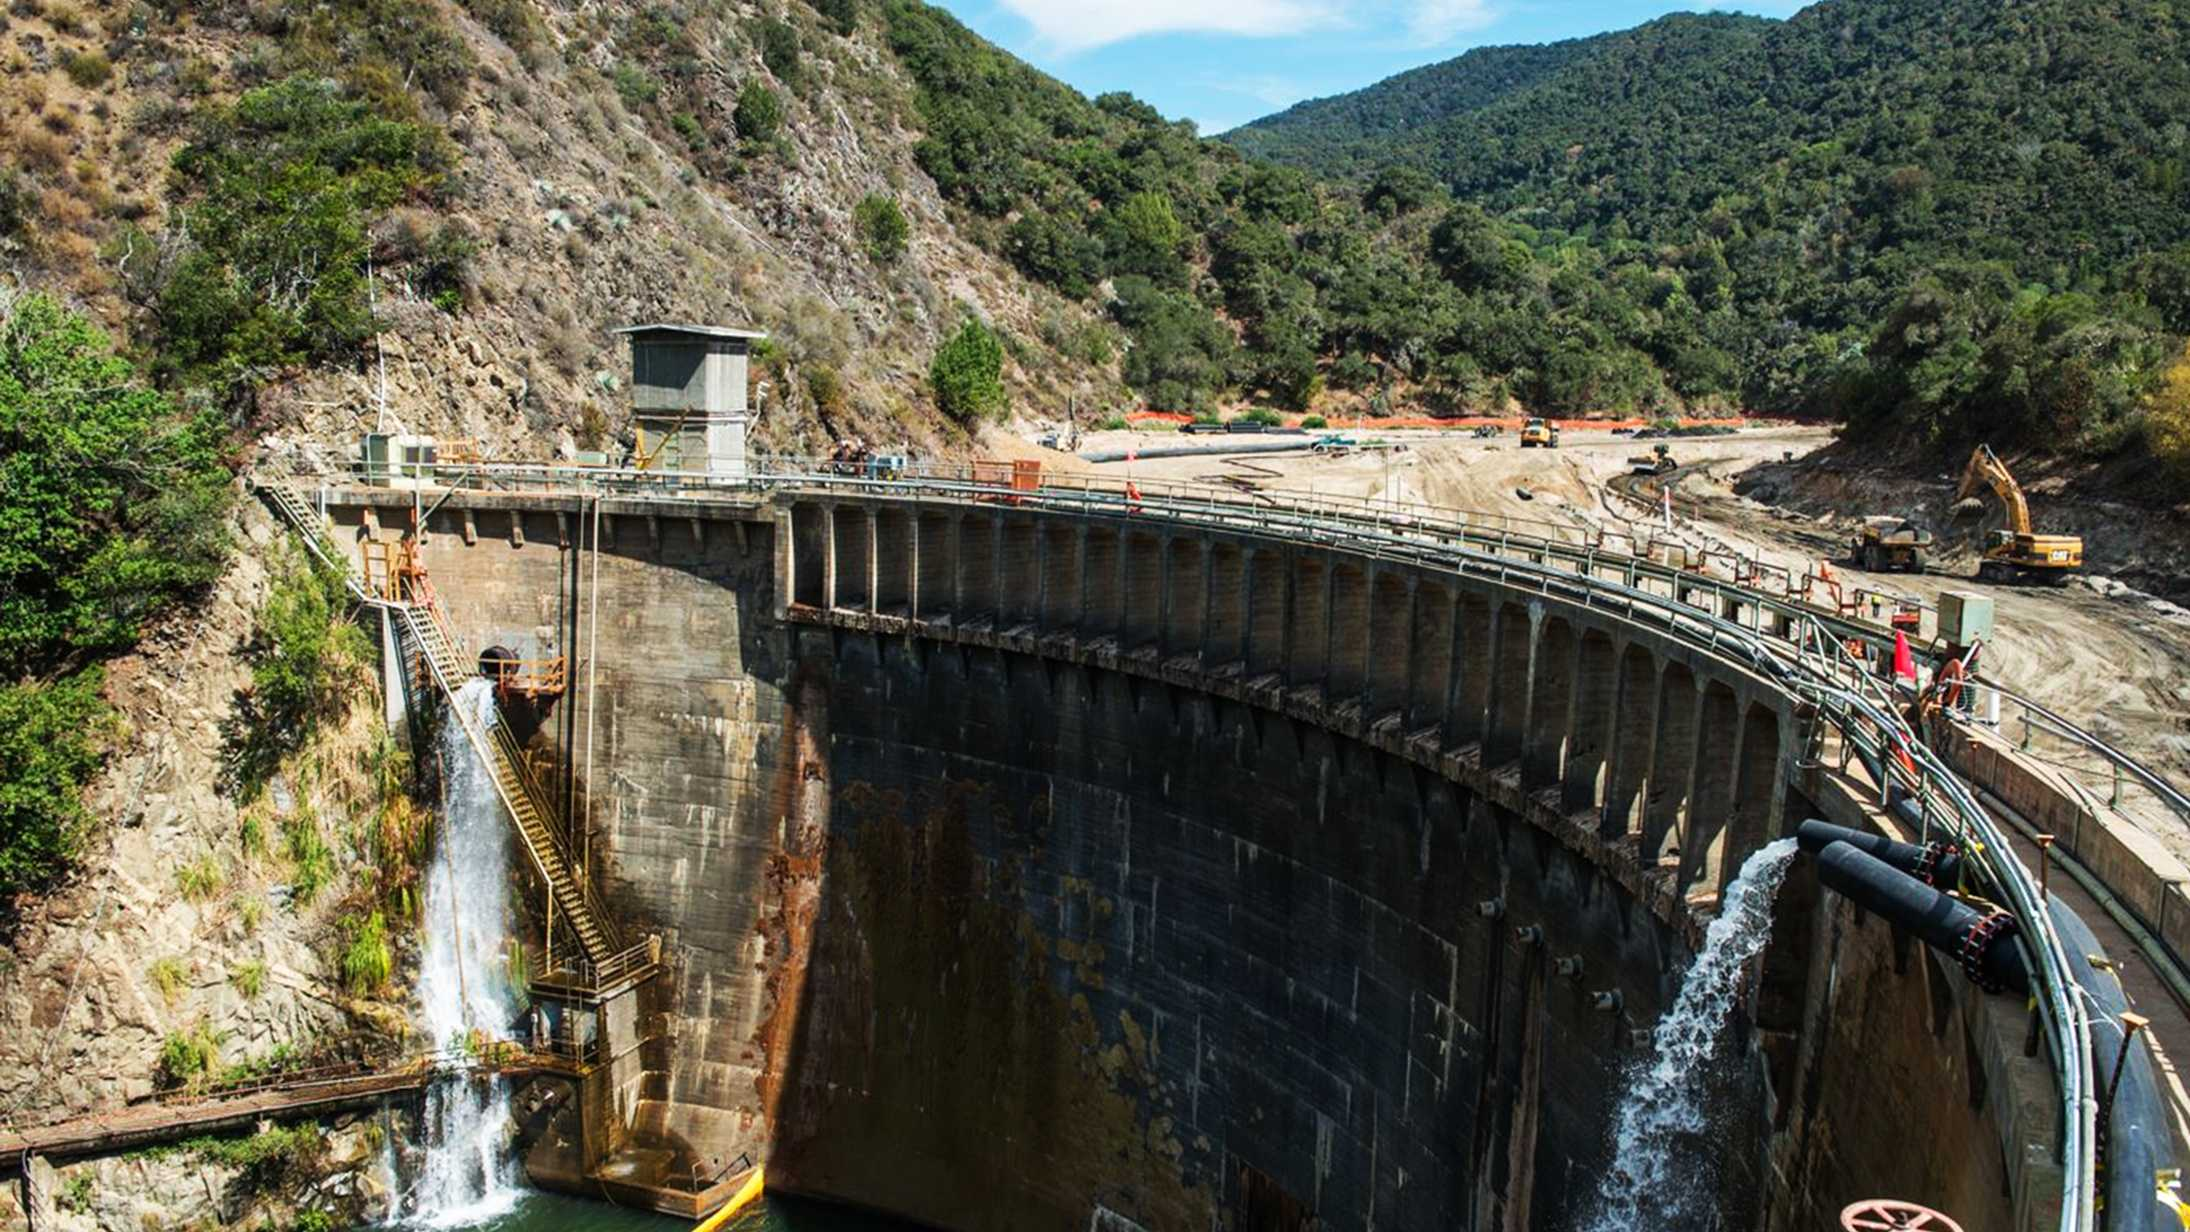 The San Clemente Dam removal project in Carmel Valley is seen in July 2014.